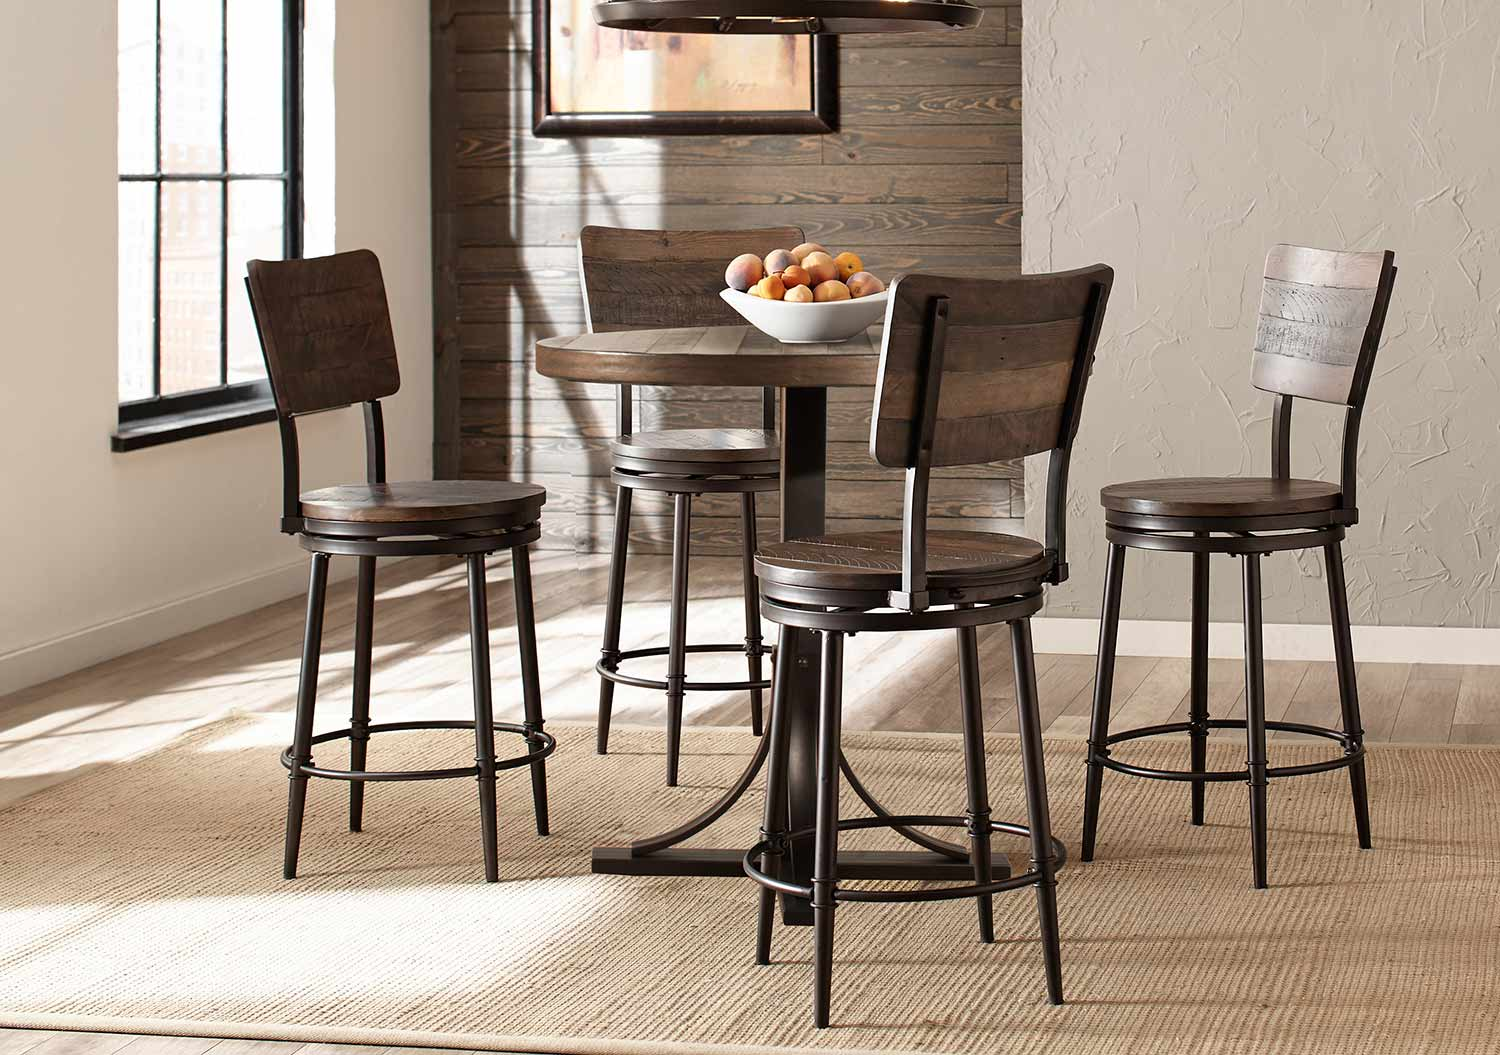 Hillsdale Jennings 5 Piece Counter Height Dining Set with Swivel Counter Height Stools - Walnut Wood/Brown Metal